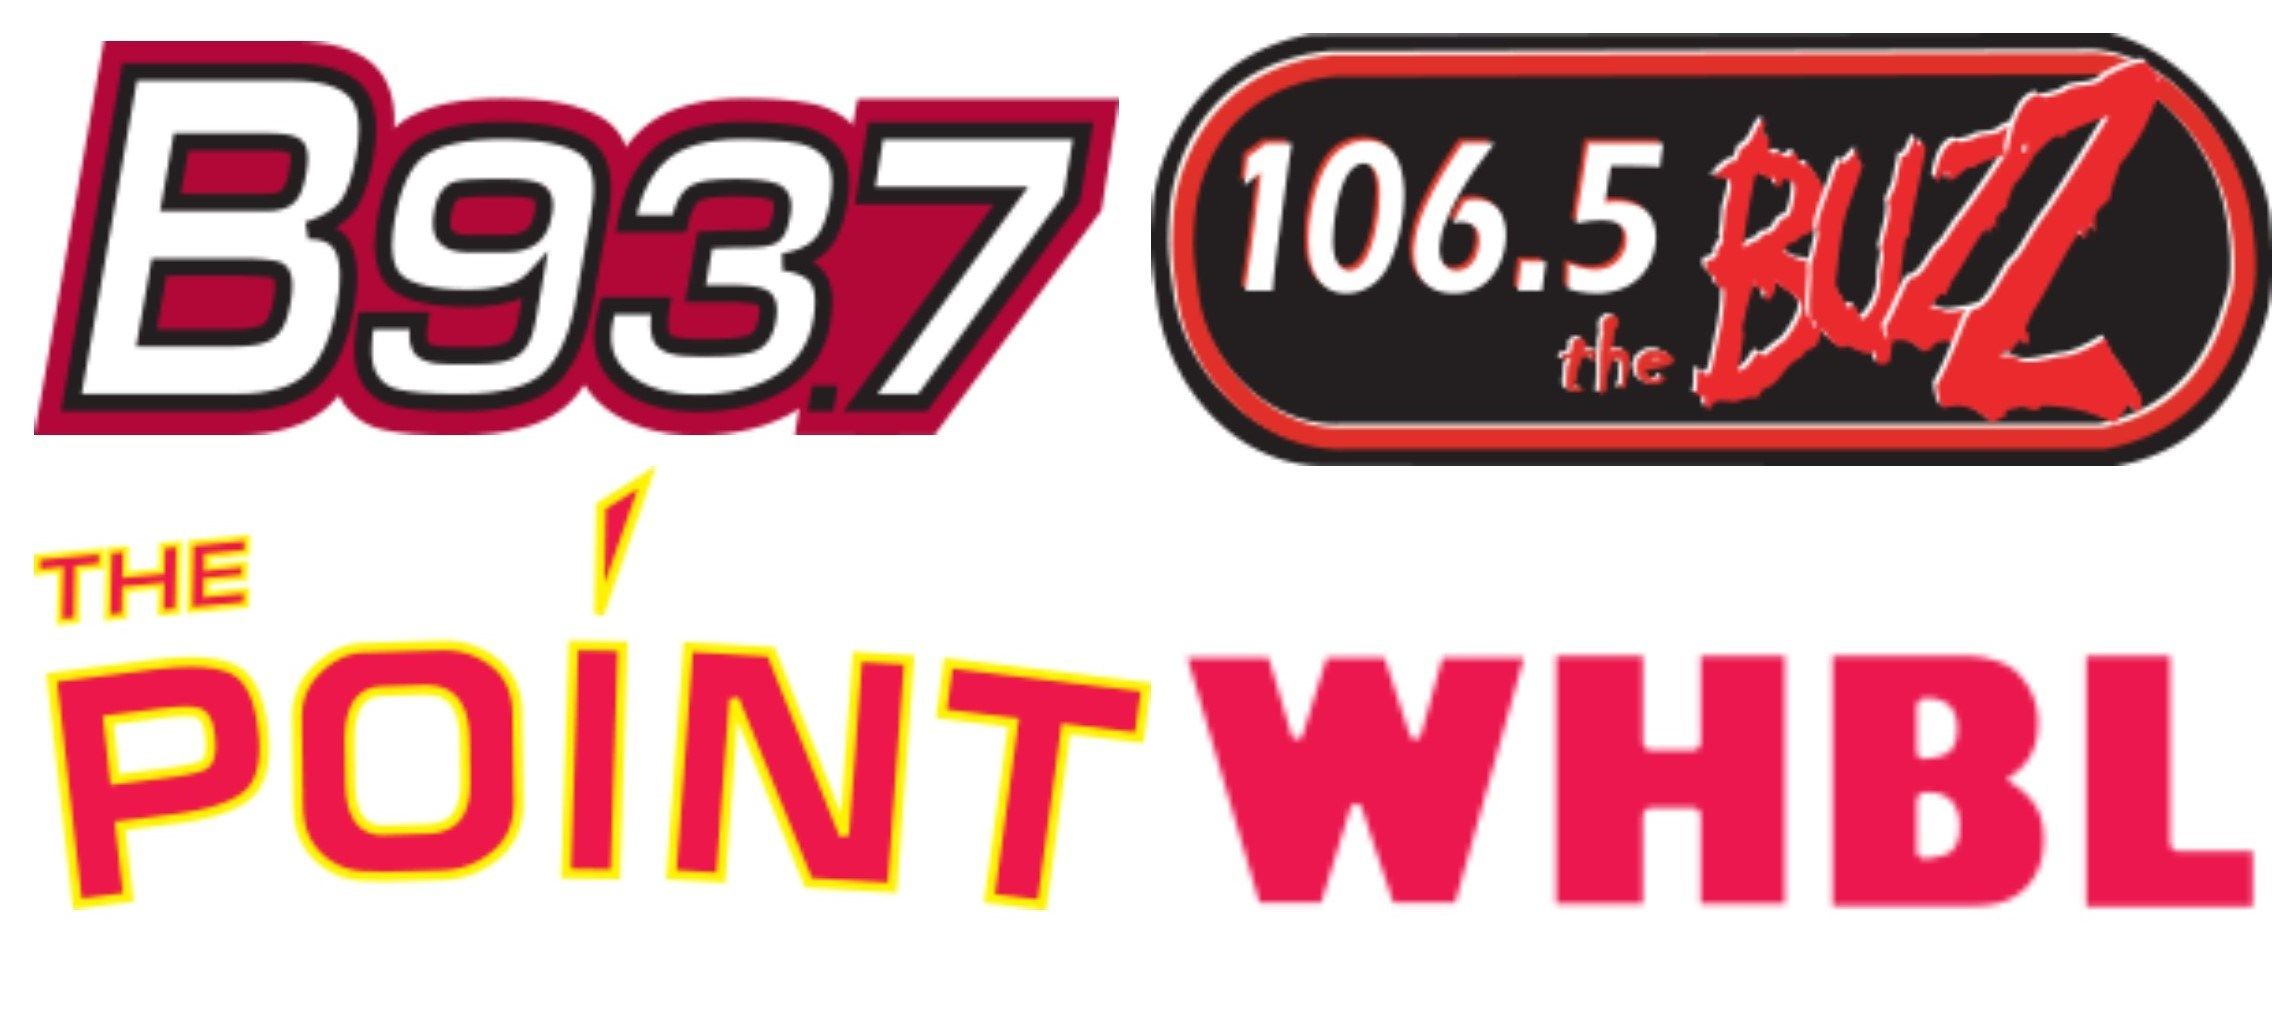 Midwest Communications (WHBL 1130am, WHBZ 106.5, WBFM 93.7, WXER 104.5)